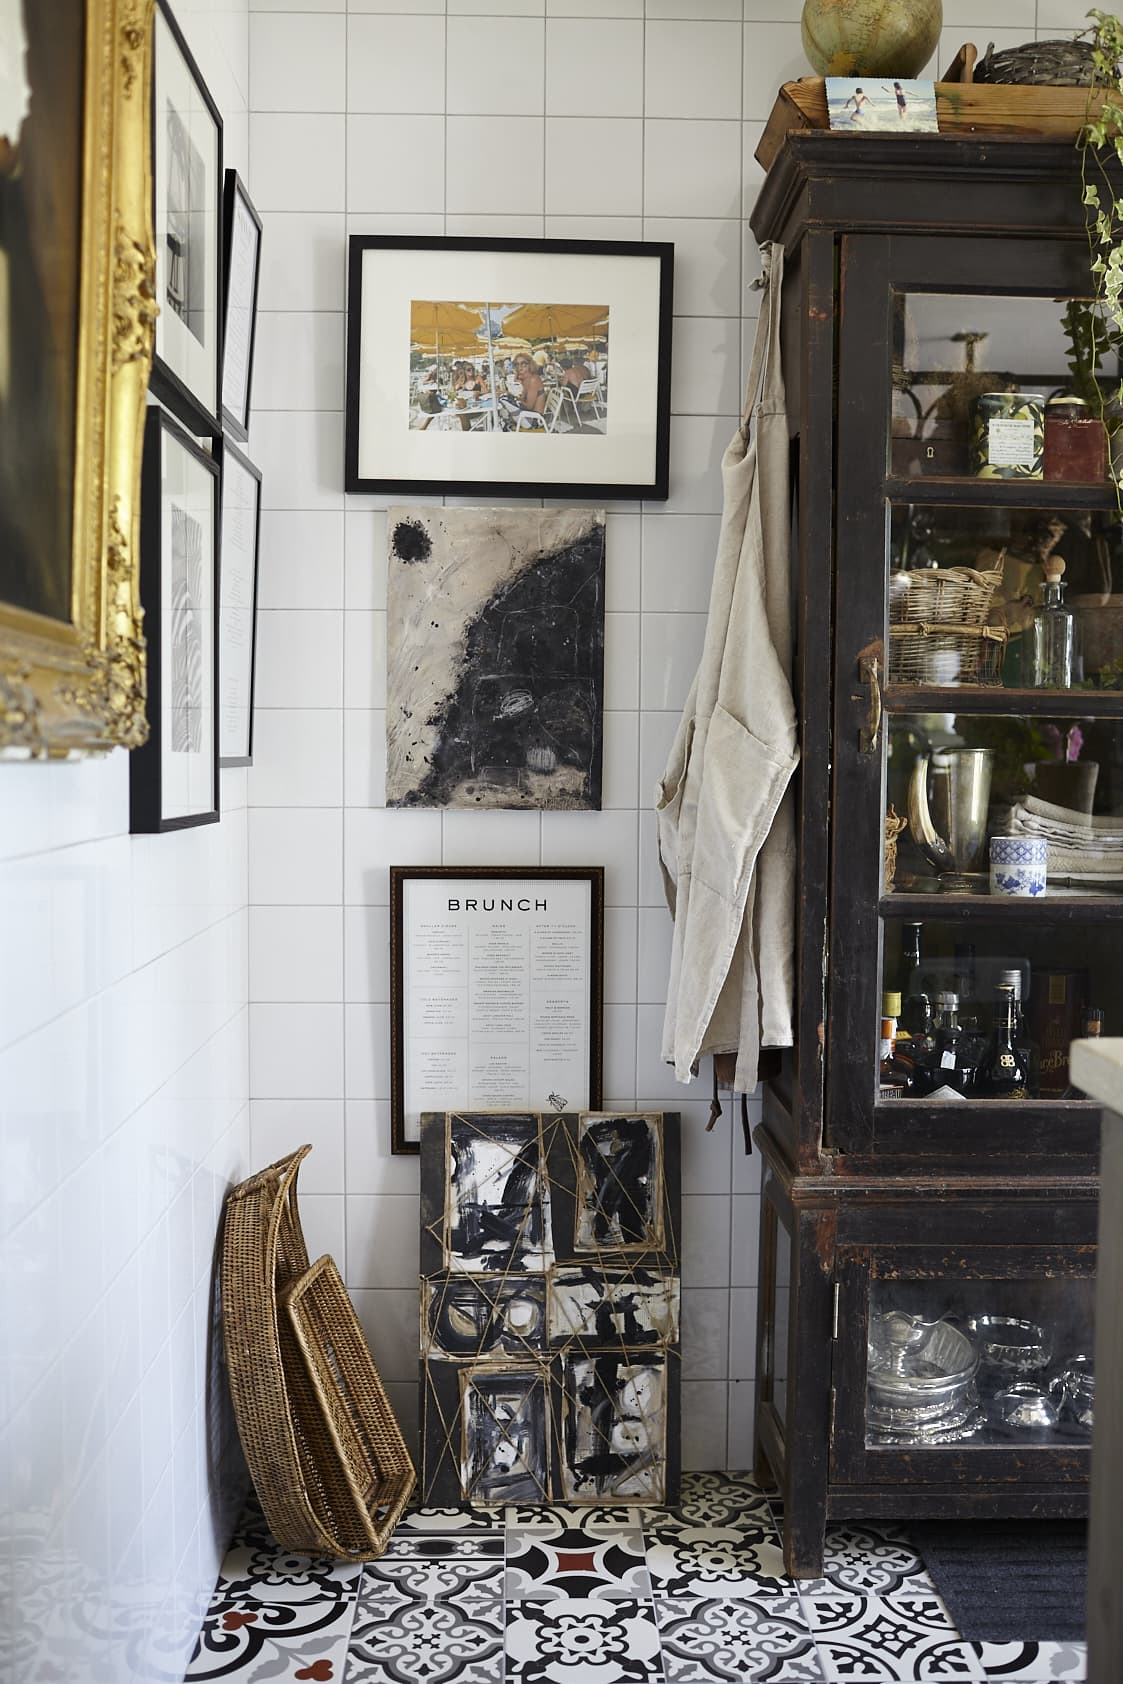 In one of the corners of the kitchen, Anna has framed a couple of restaurant menus that she puts together with photographs and a portrait in a sumptuous gold frame. The black cabinet is from Holland.